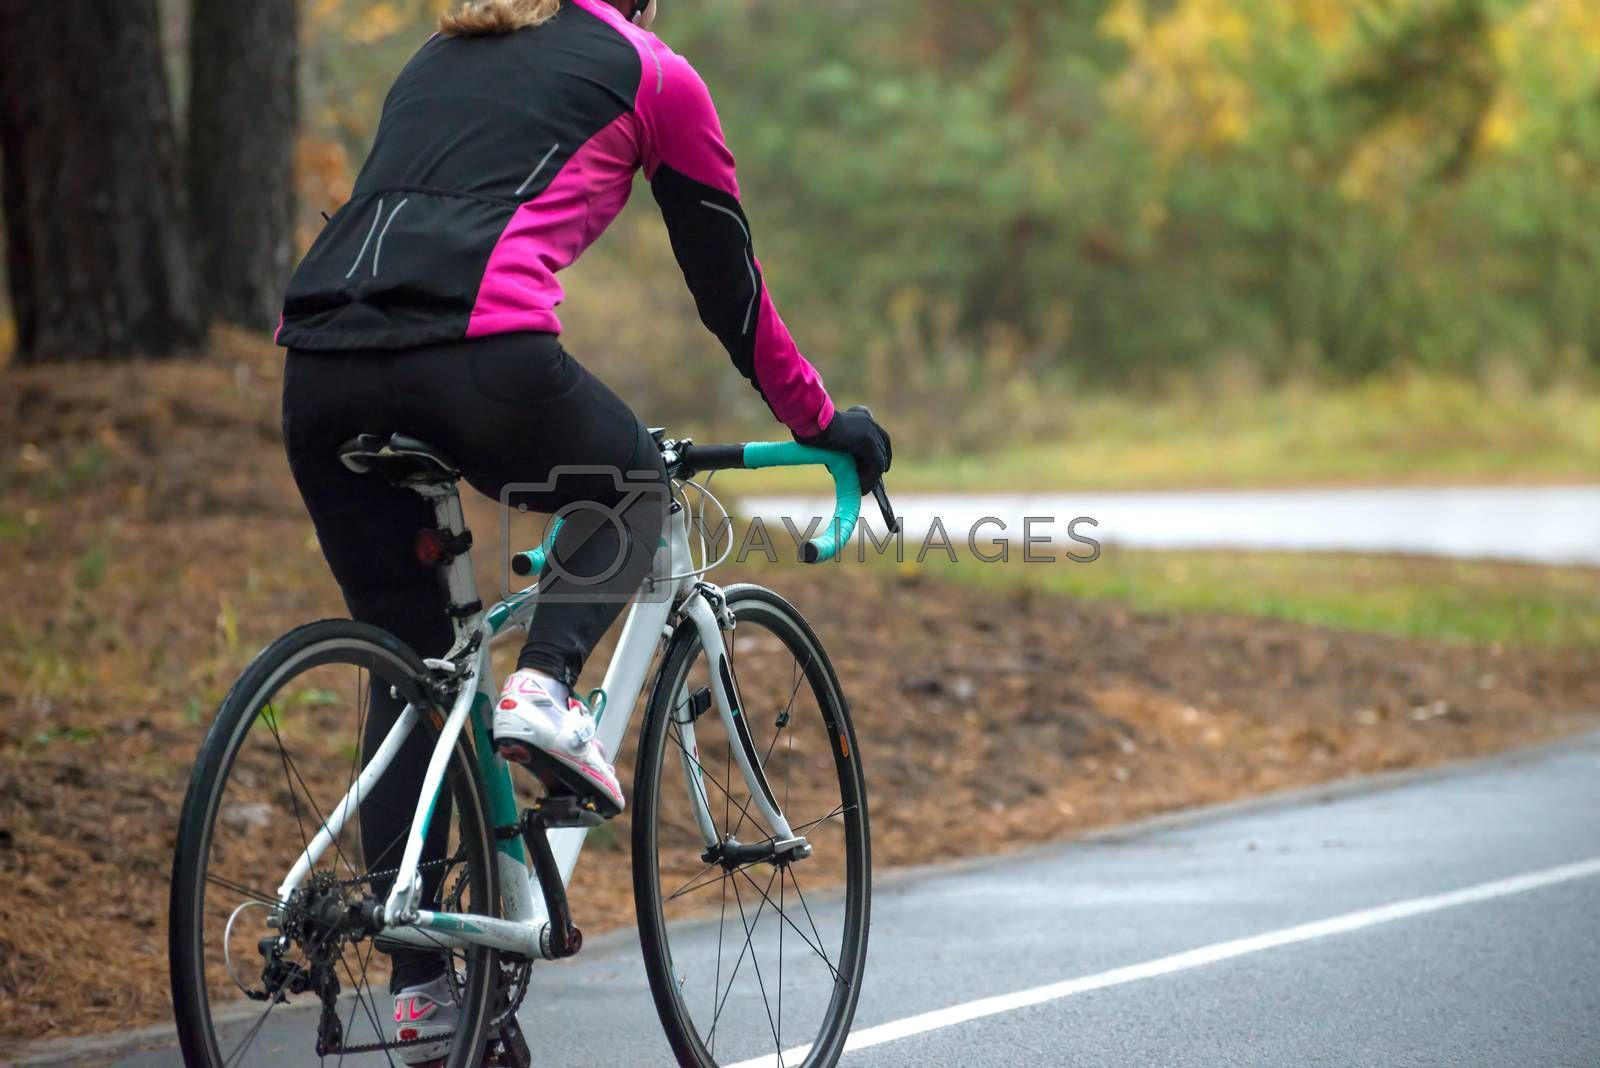 Young Woman in Pink Jacket Riding Road Bicycle in the Park in the Cold Autumn Day. Healthy Lifestyle. by maxpro